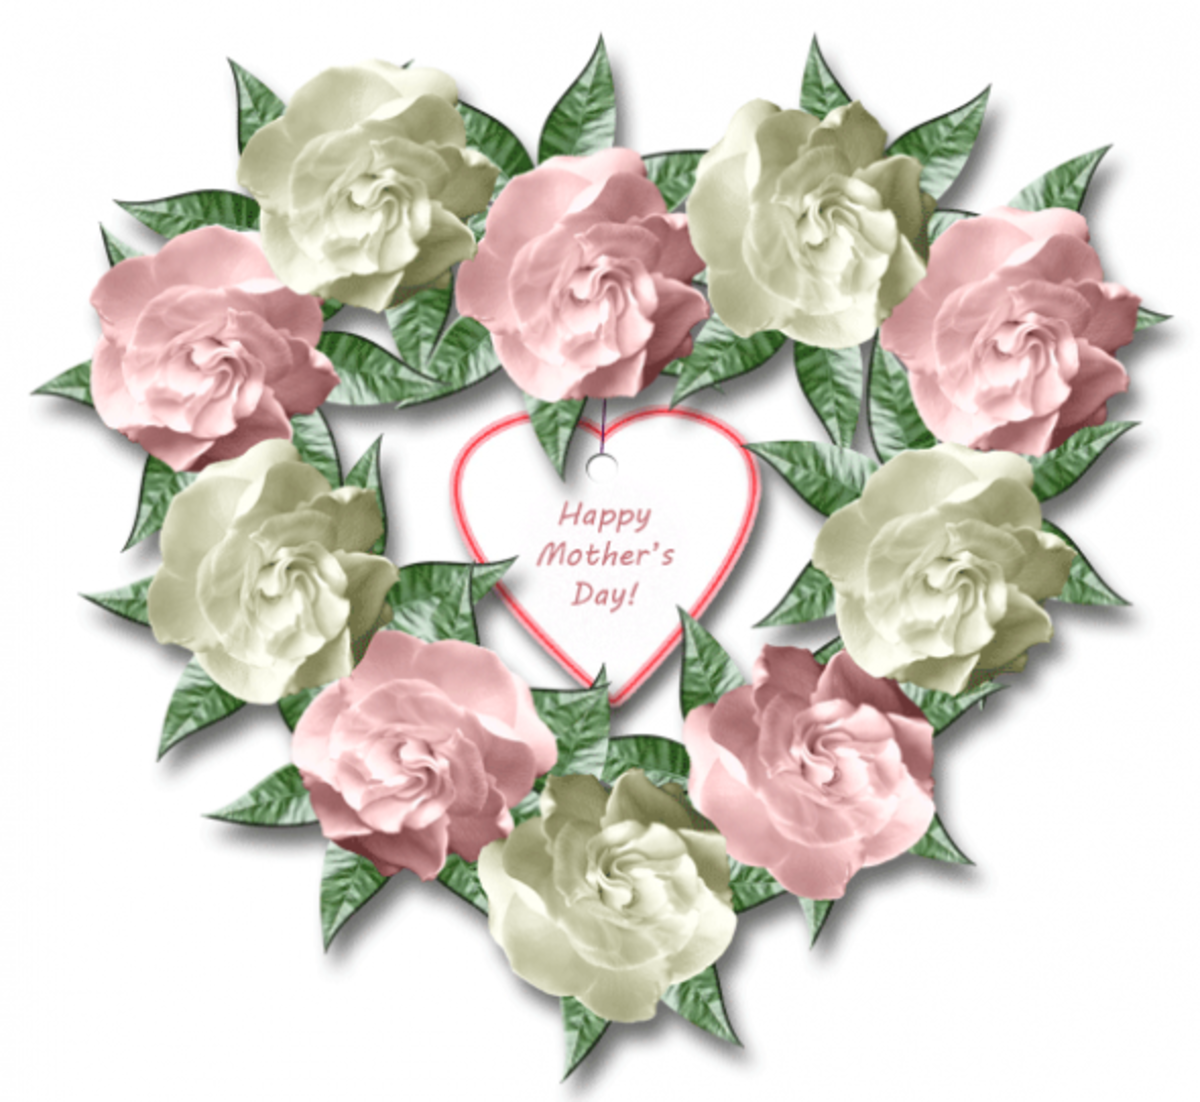 Save this Mother's Day wreath clipart for a Mother's Day greeting, or scroll down to create a large version for a fun Mother's Day craft idea.